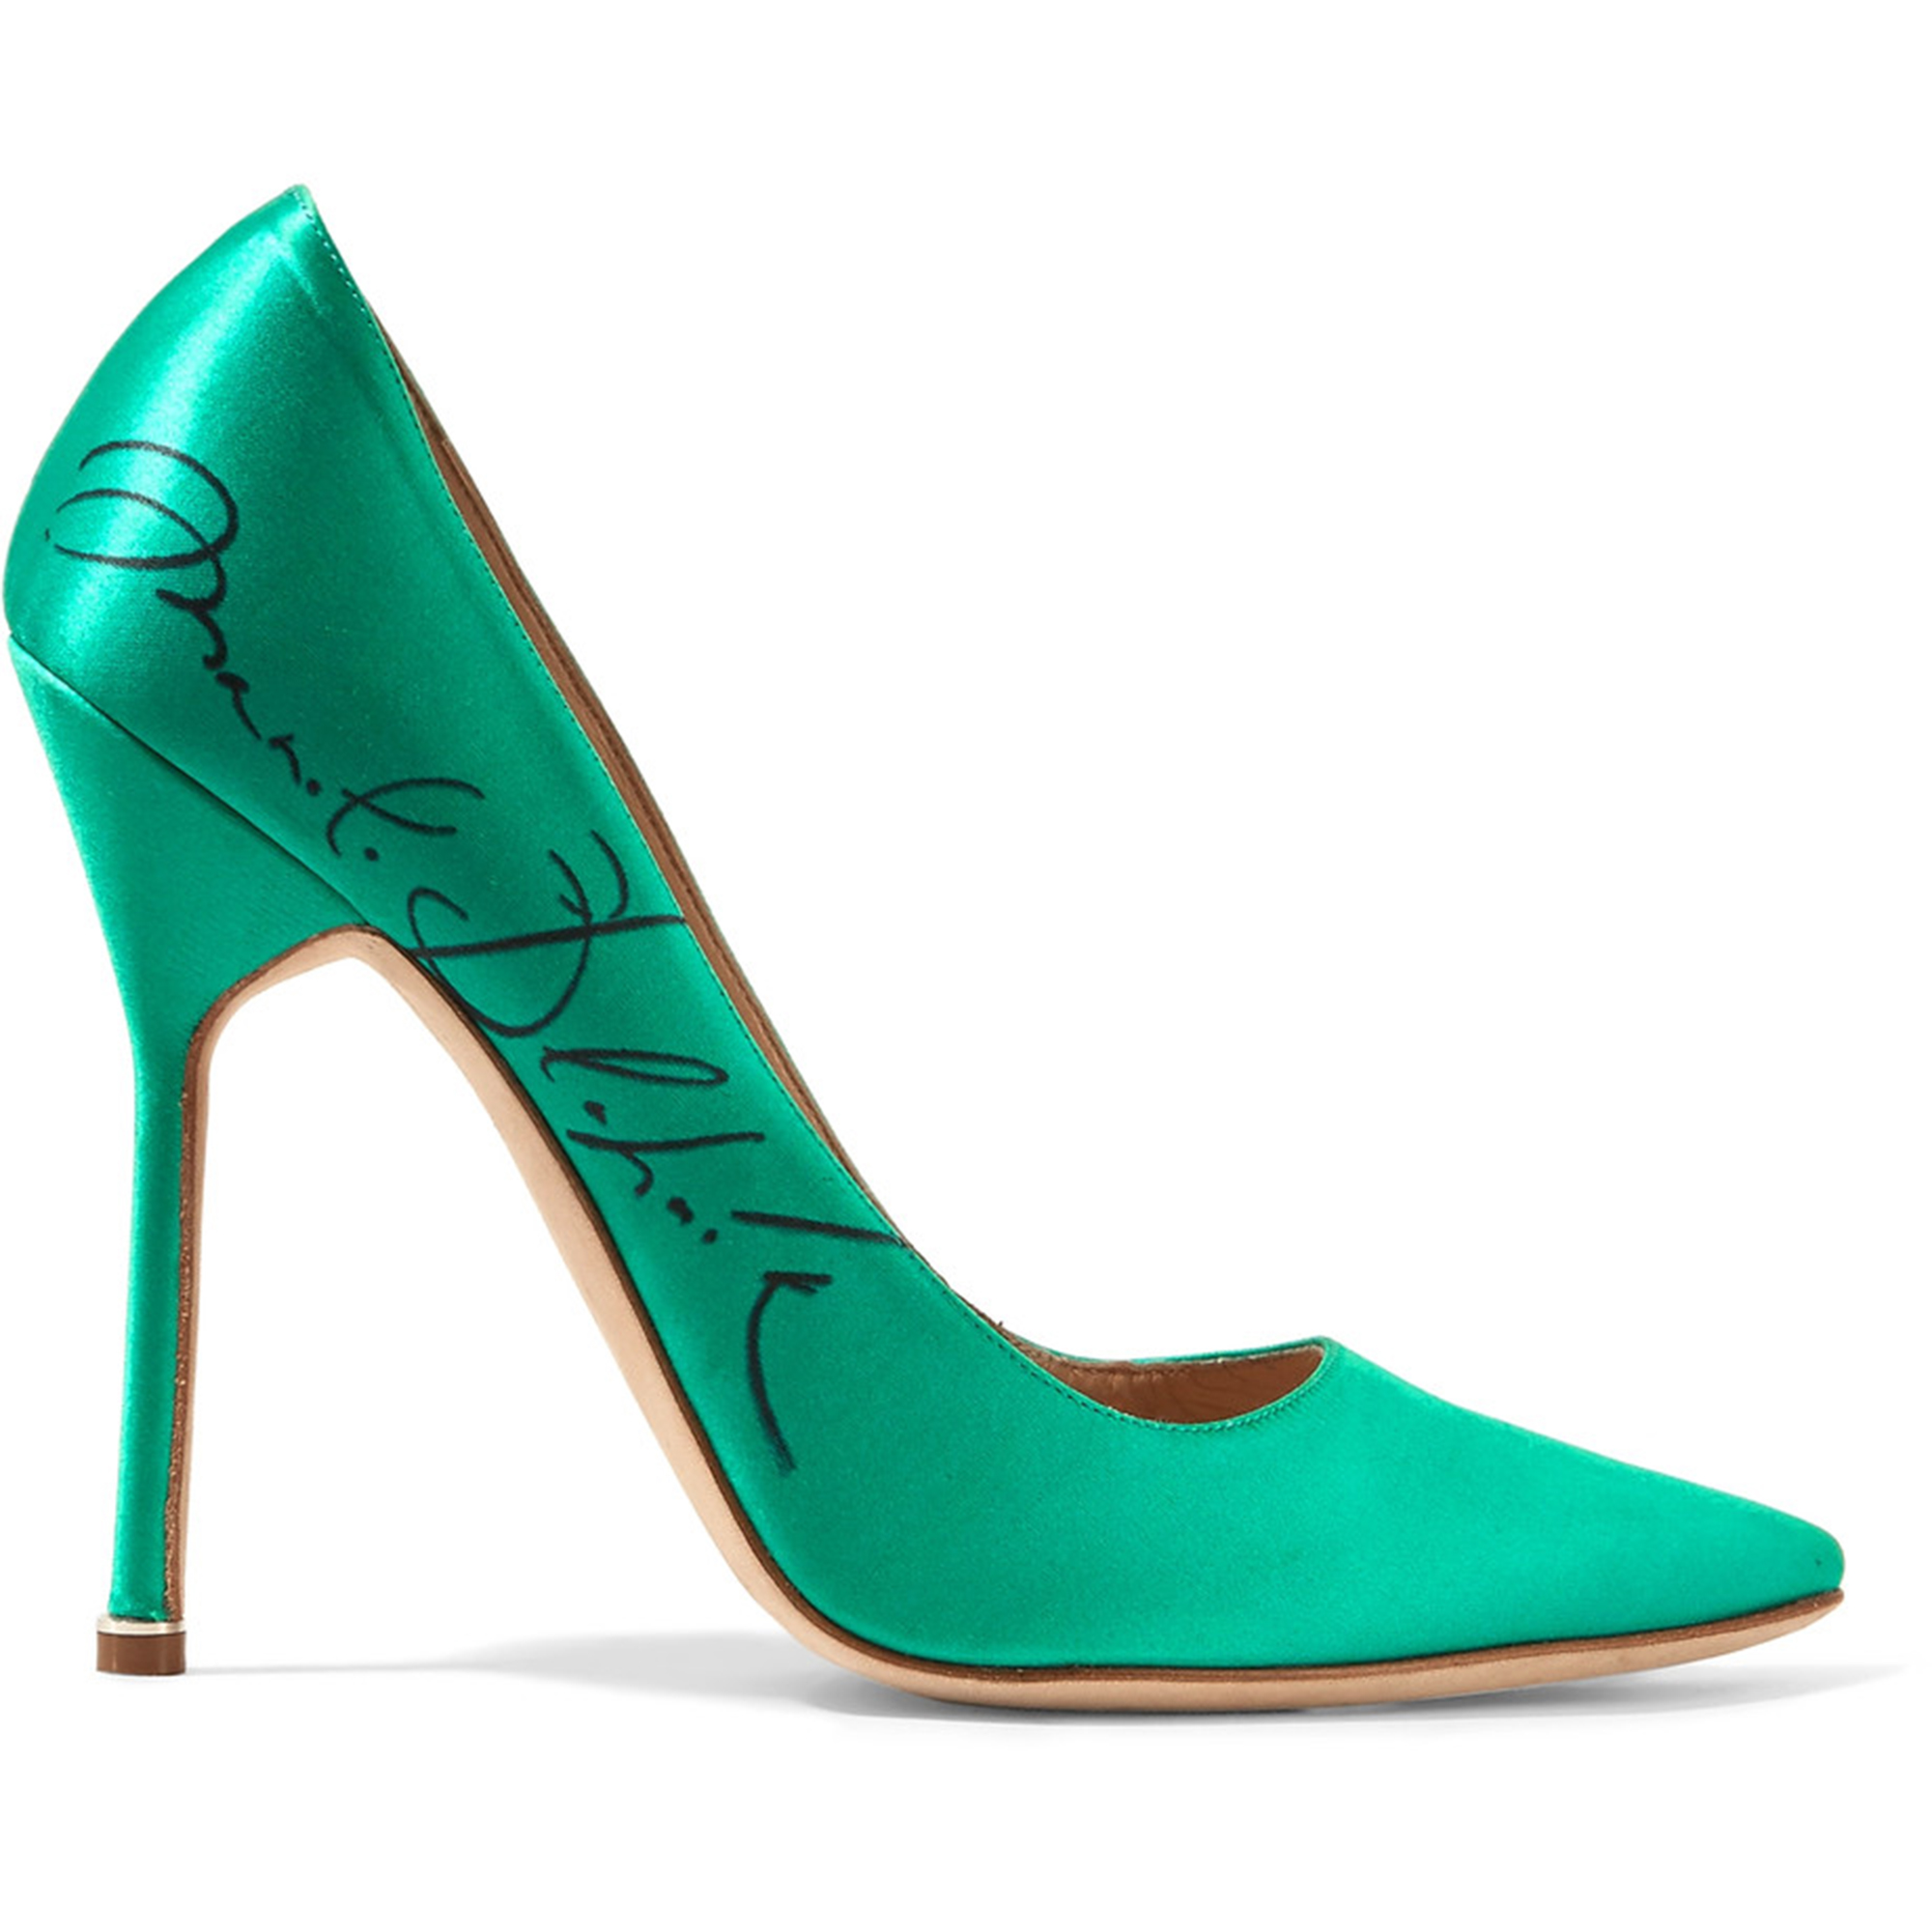 Vetements x Manolo Blahnik Heels Are Here — and You Can ...